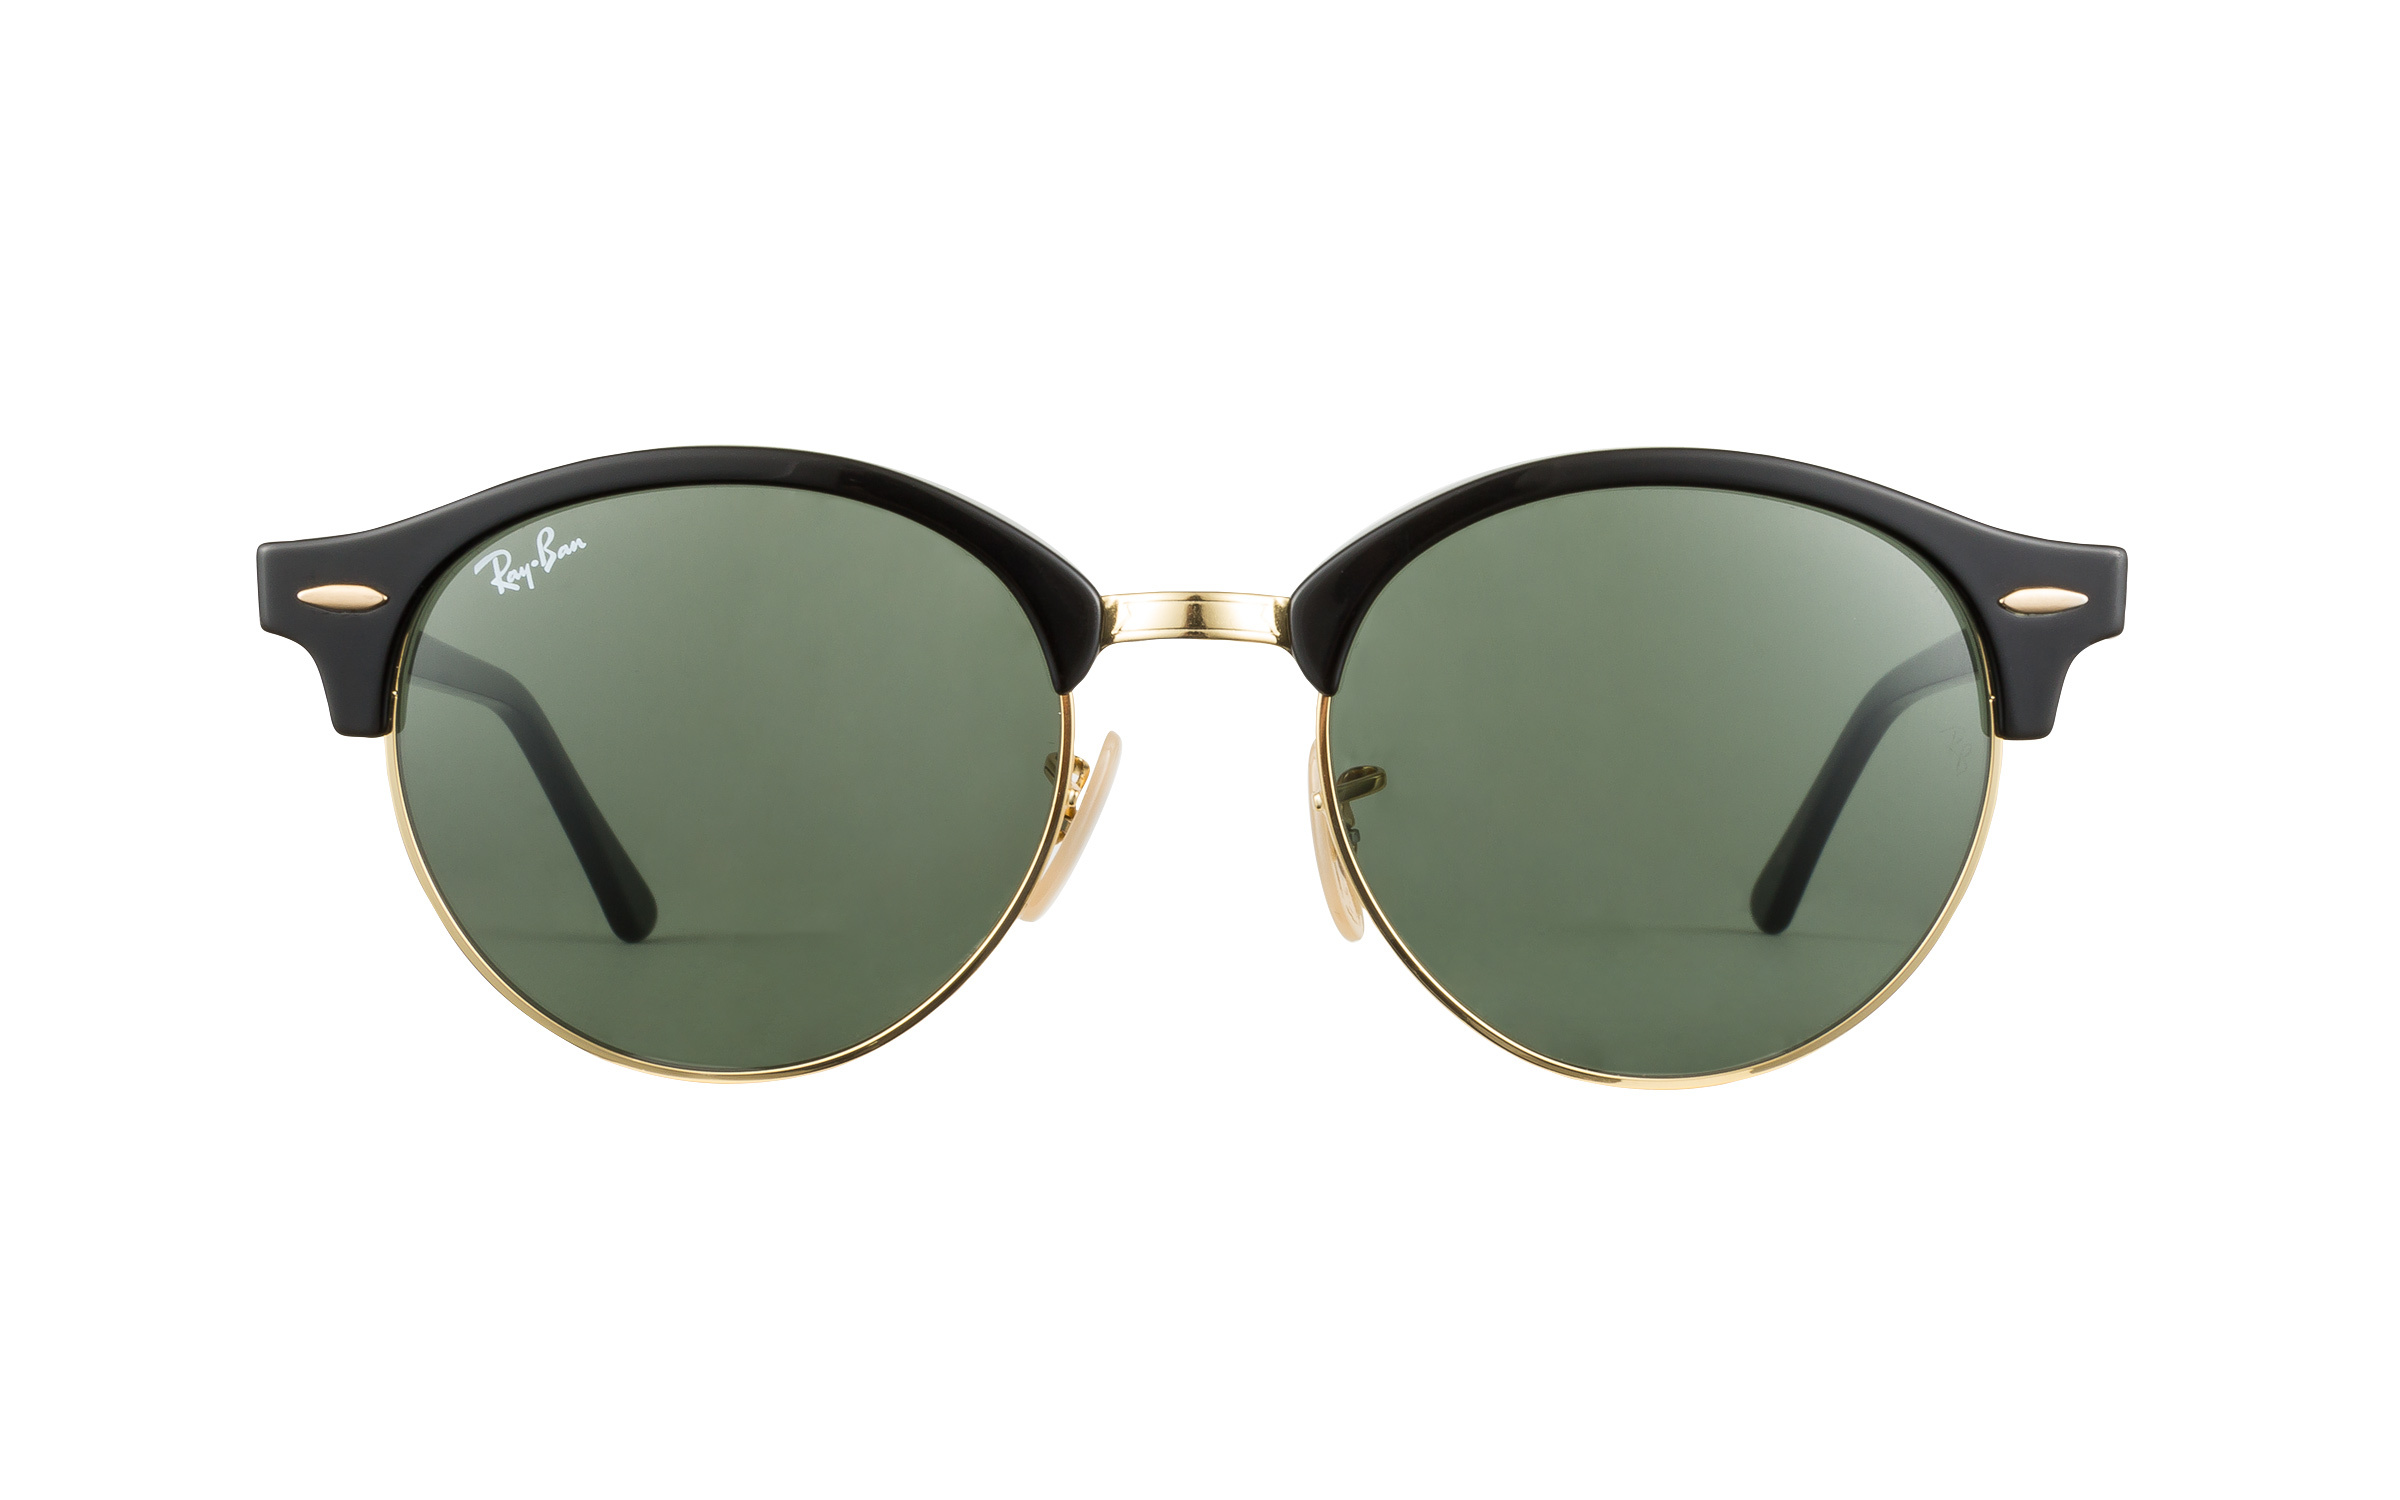 compare ray ban sunglasses  Shop for Ray-Ban sunglasses online with friendly service and a ...